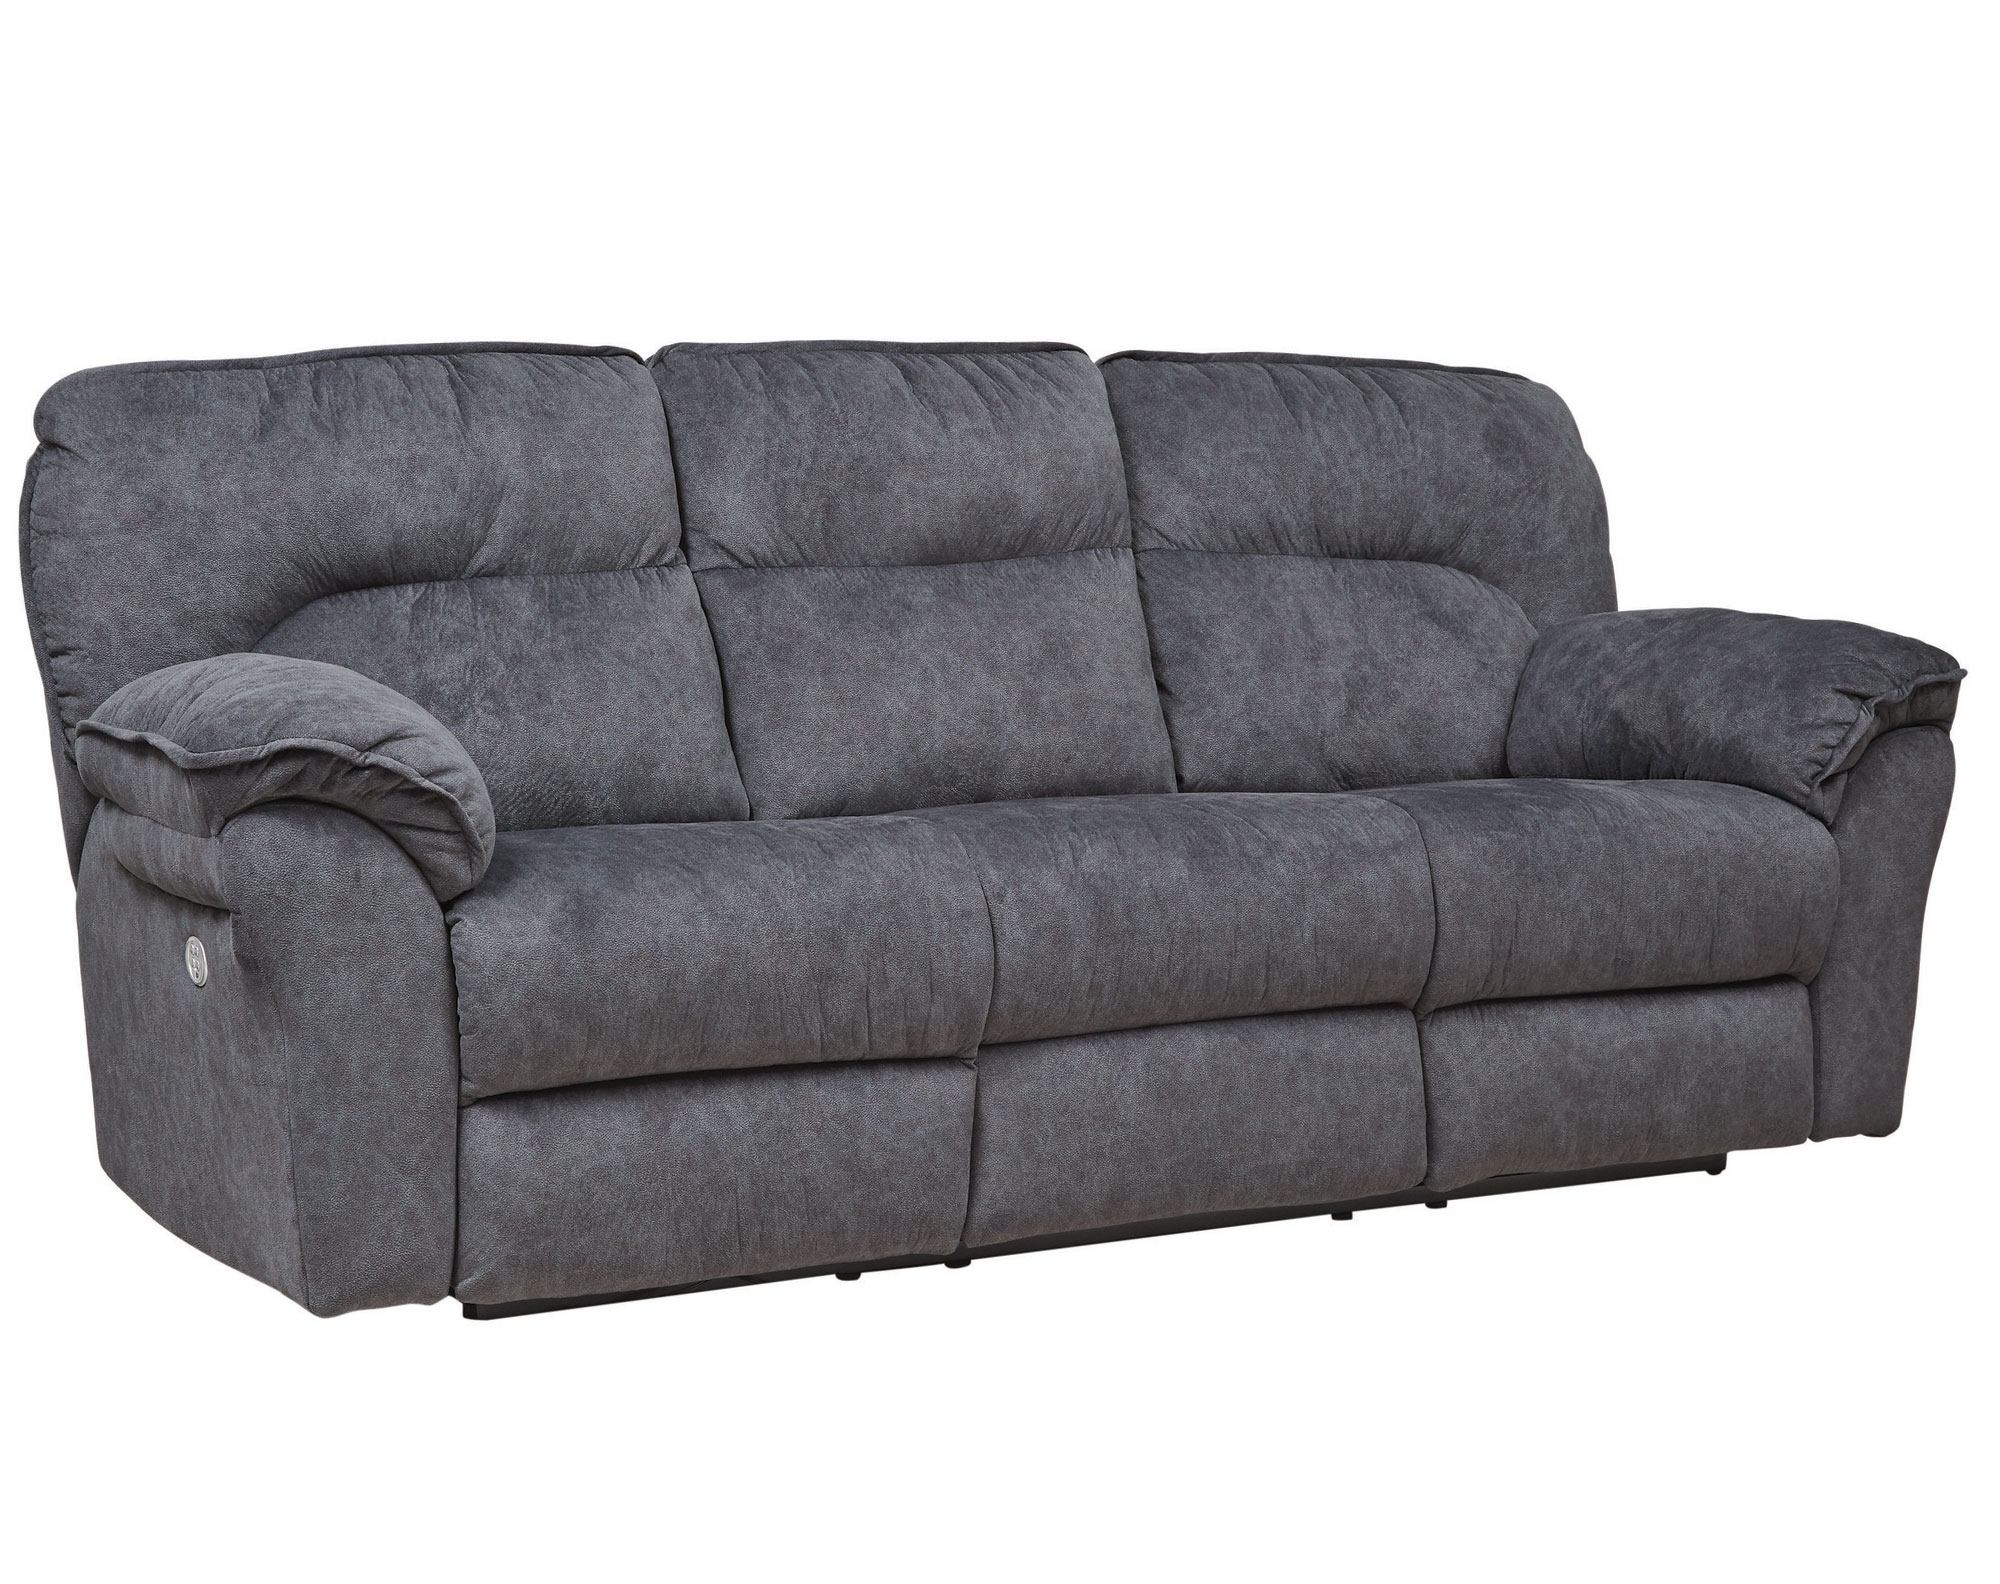 Full Ride 96 Double Reclining Sofa 140 Sofas And Sectionals